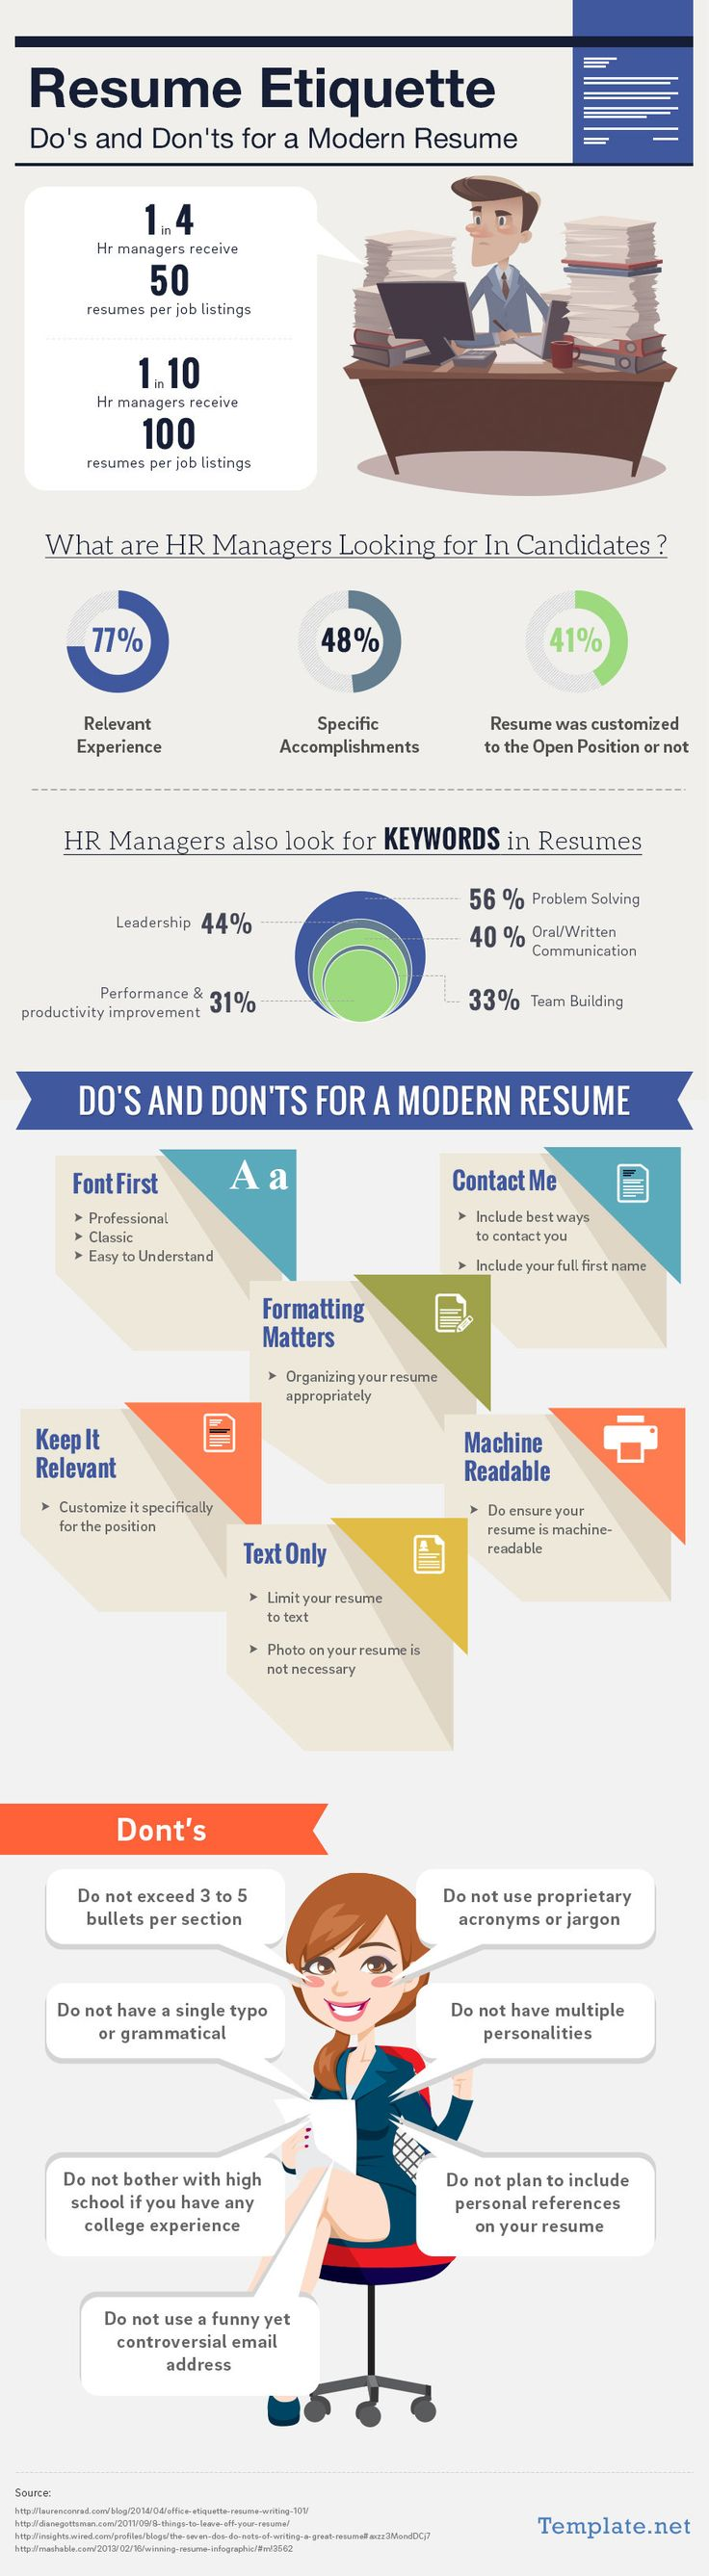 12 Best Ece 300 Images On Pinterest Resume Cover Letters Child